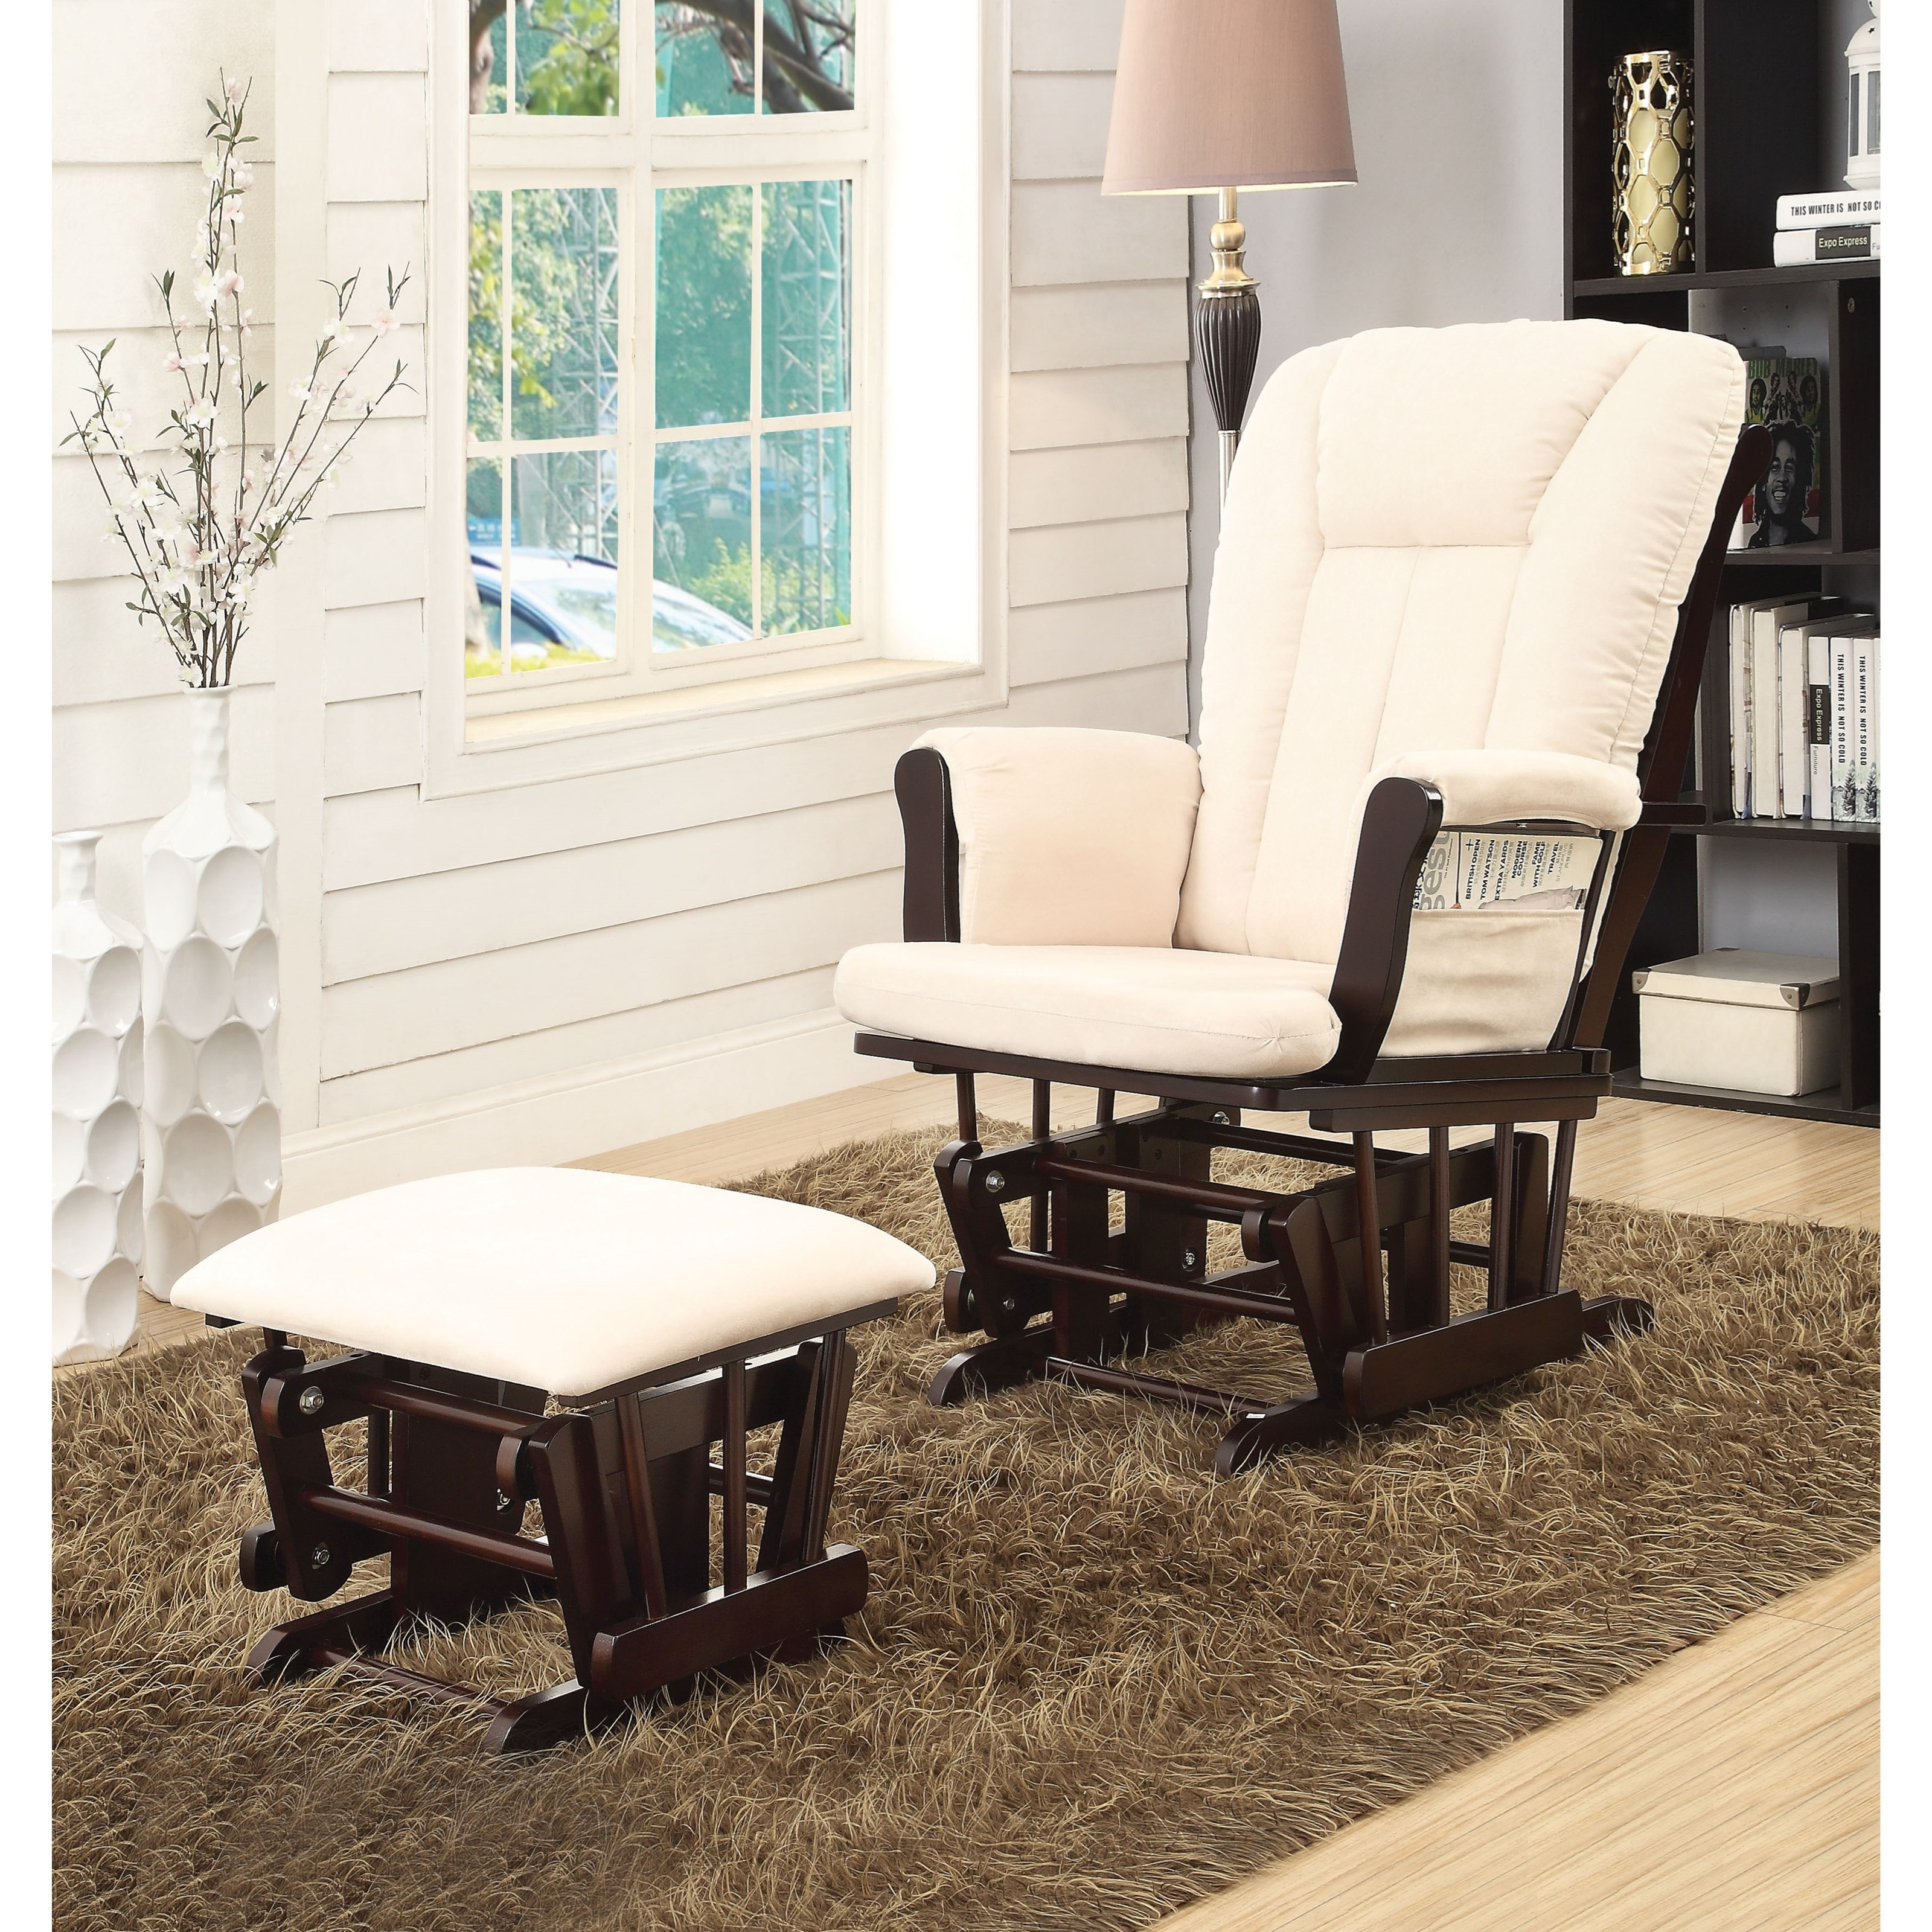 microfiber club chair with ottoman graco contempo high reviews acme furniture paola glider dream 2pcpk and